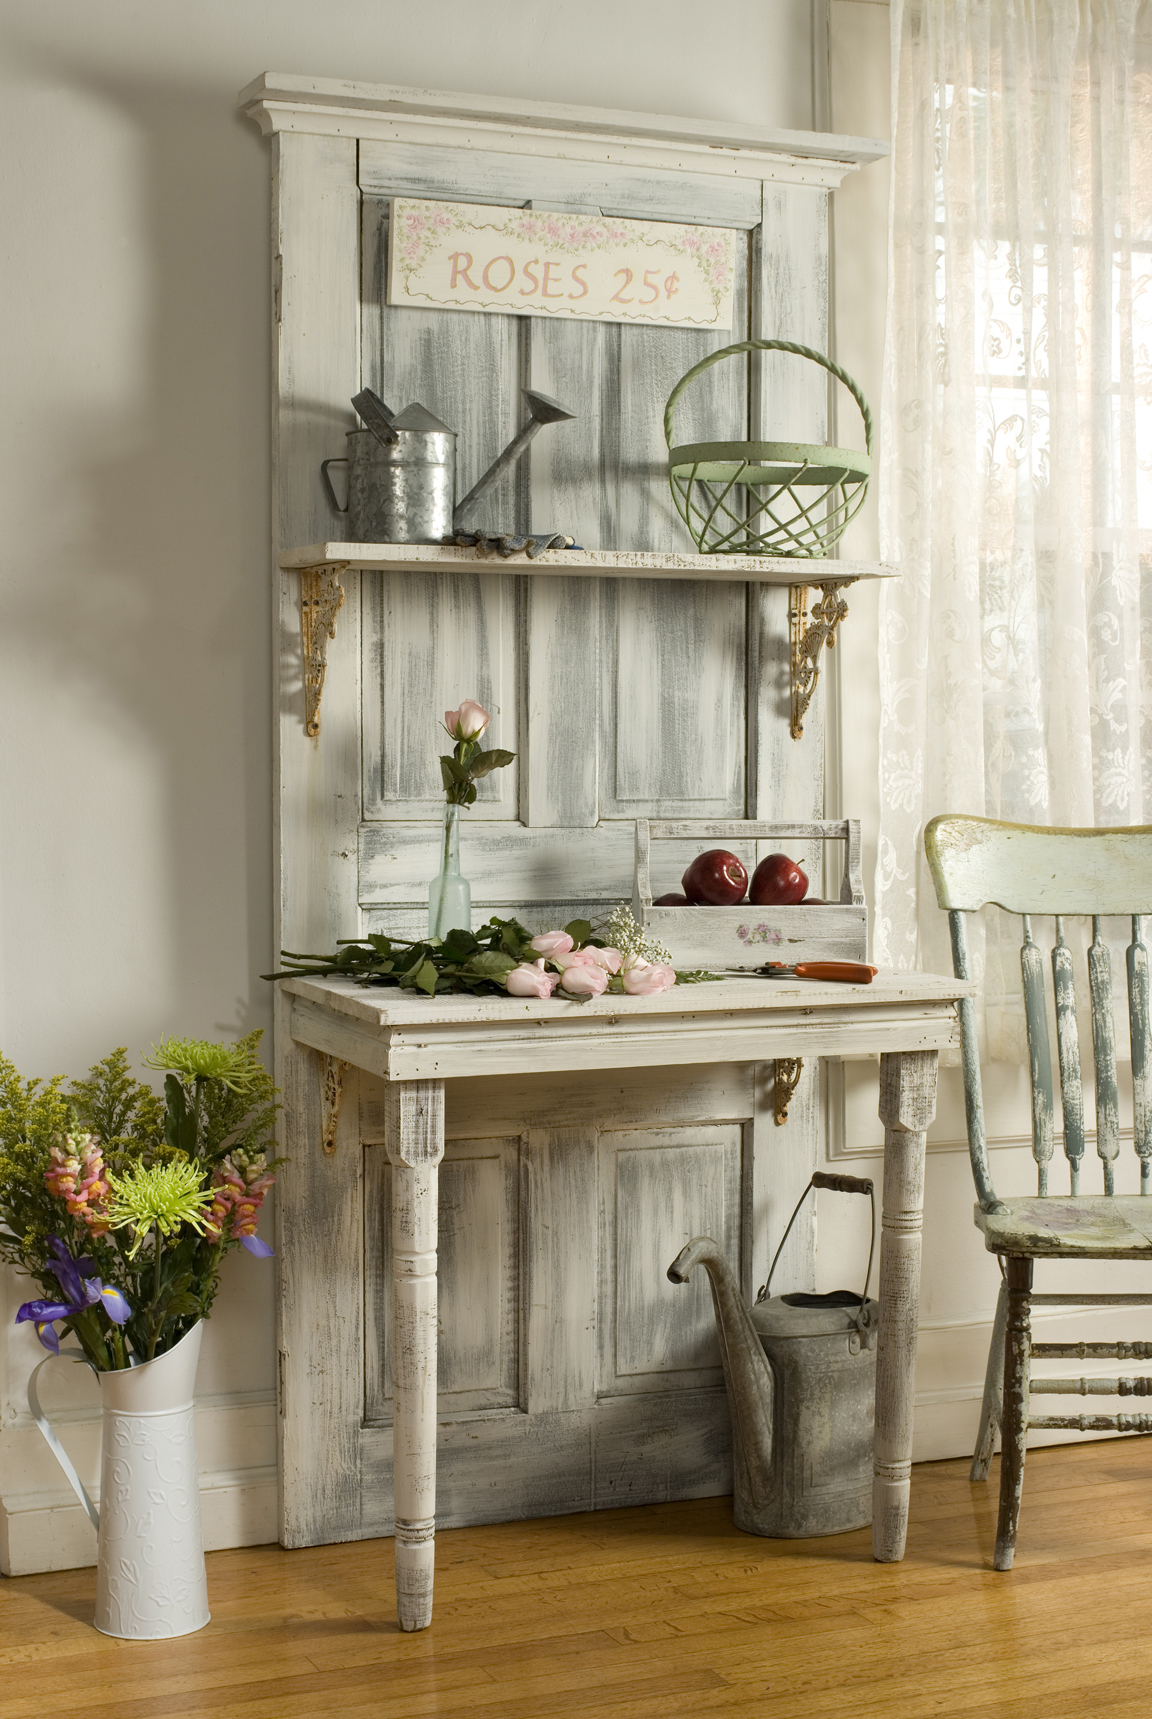 Cottage Chic Shelving on a Whitewashed Door